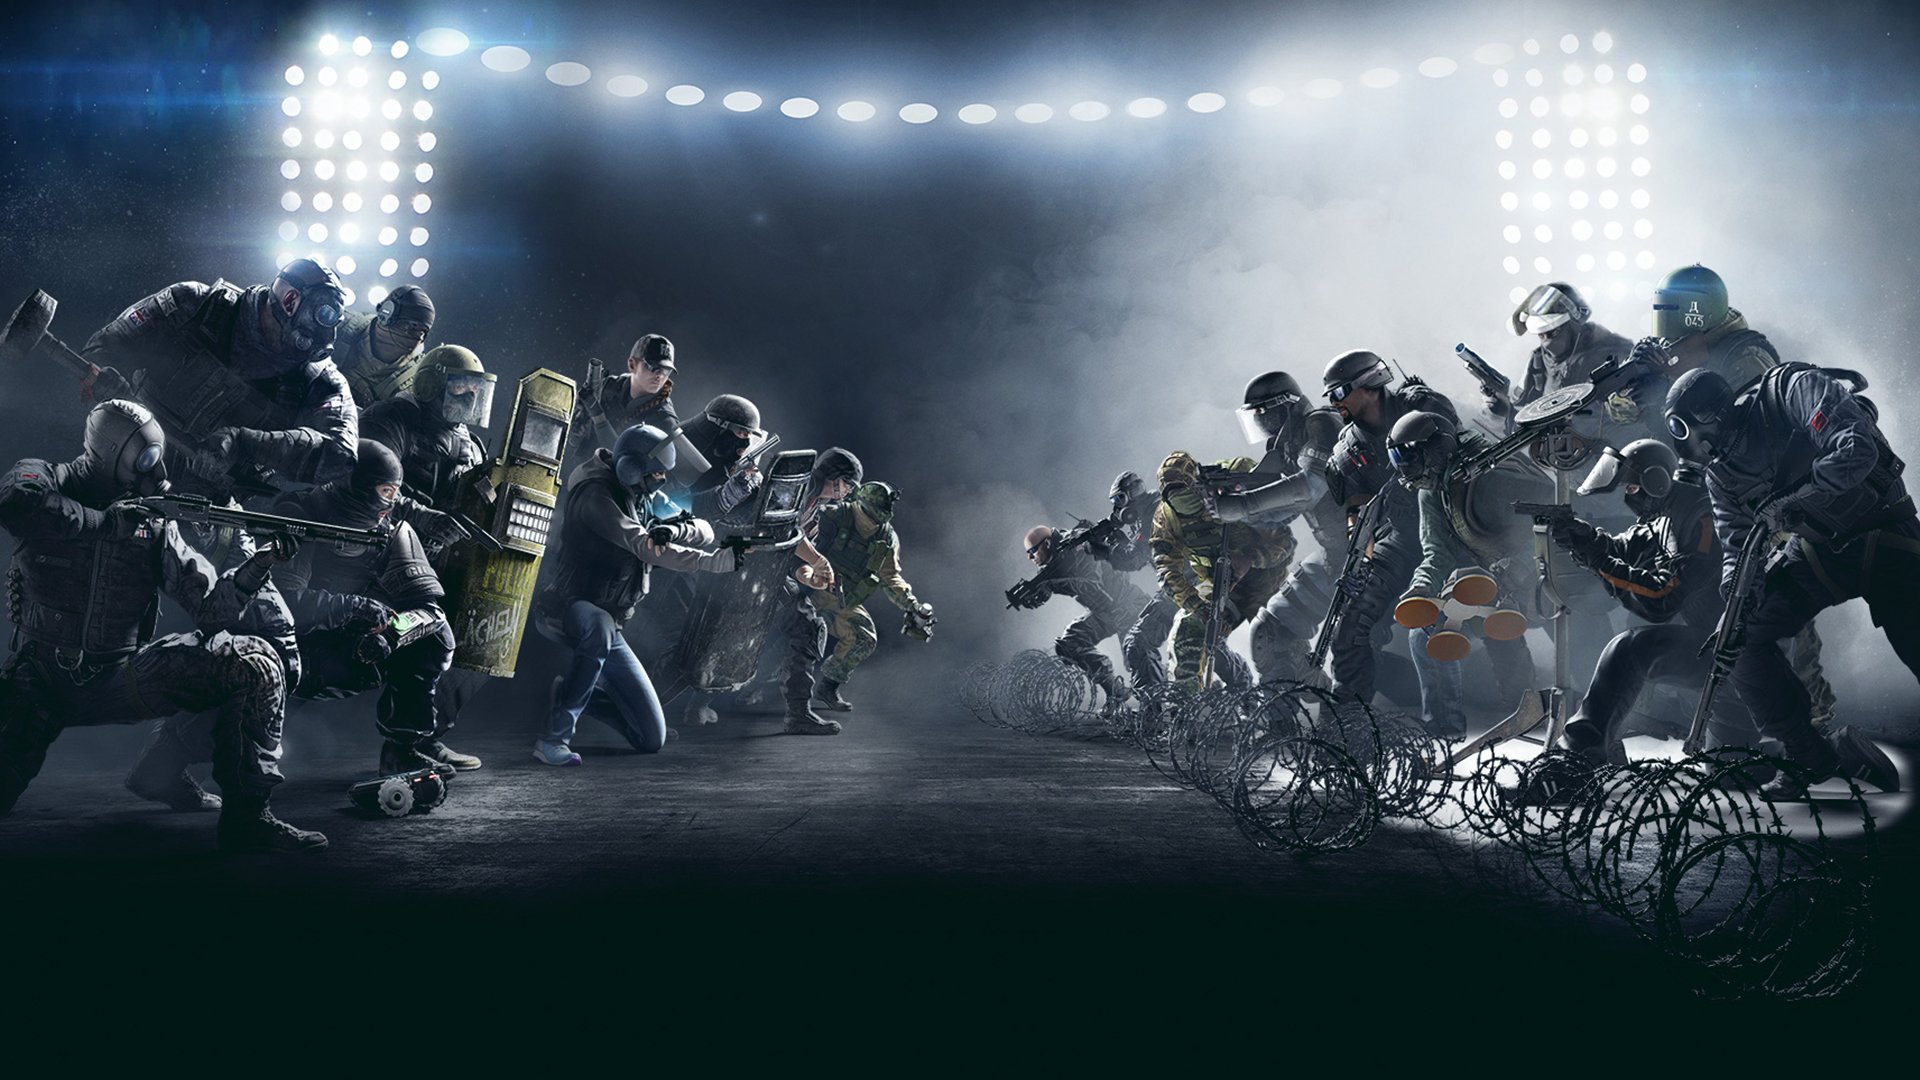 Rainbow 6 Siege S Next Operator Revealed As Dokkaebi The Hacker